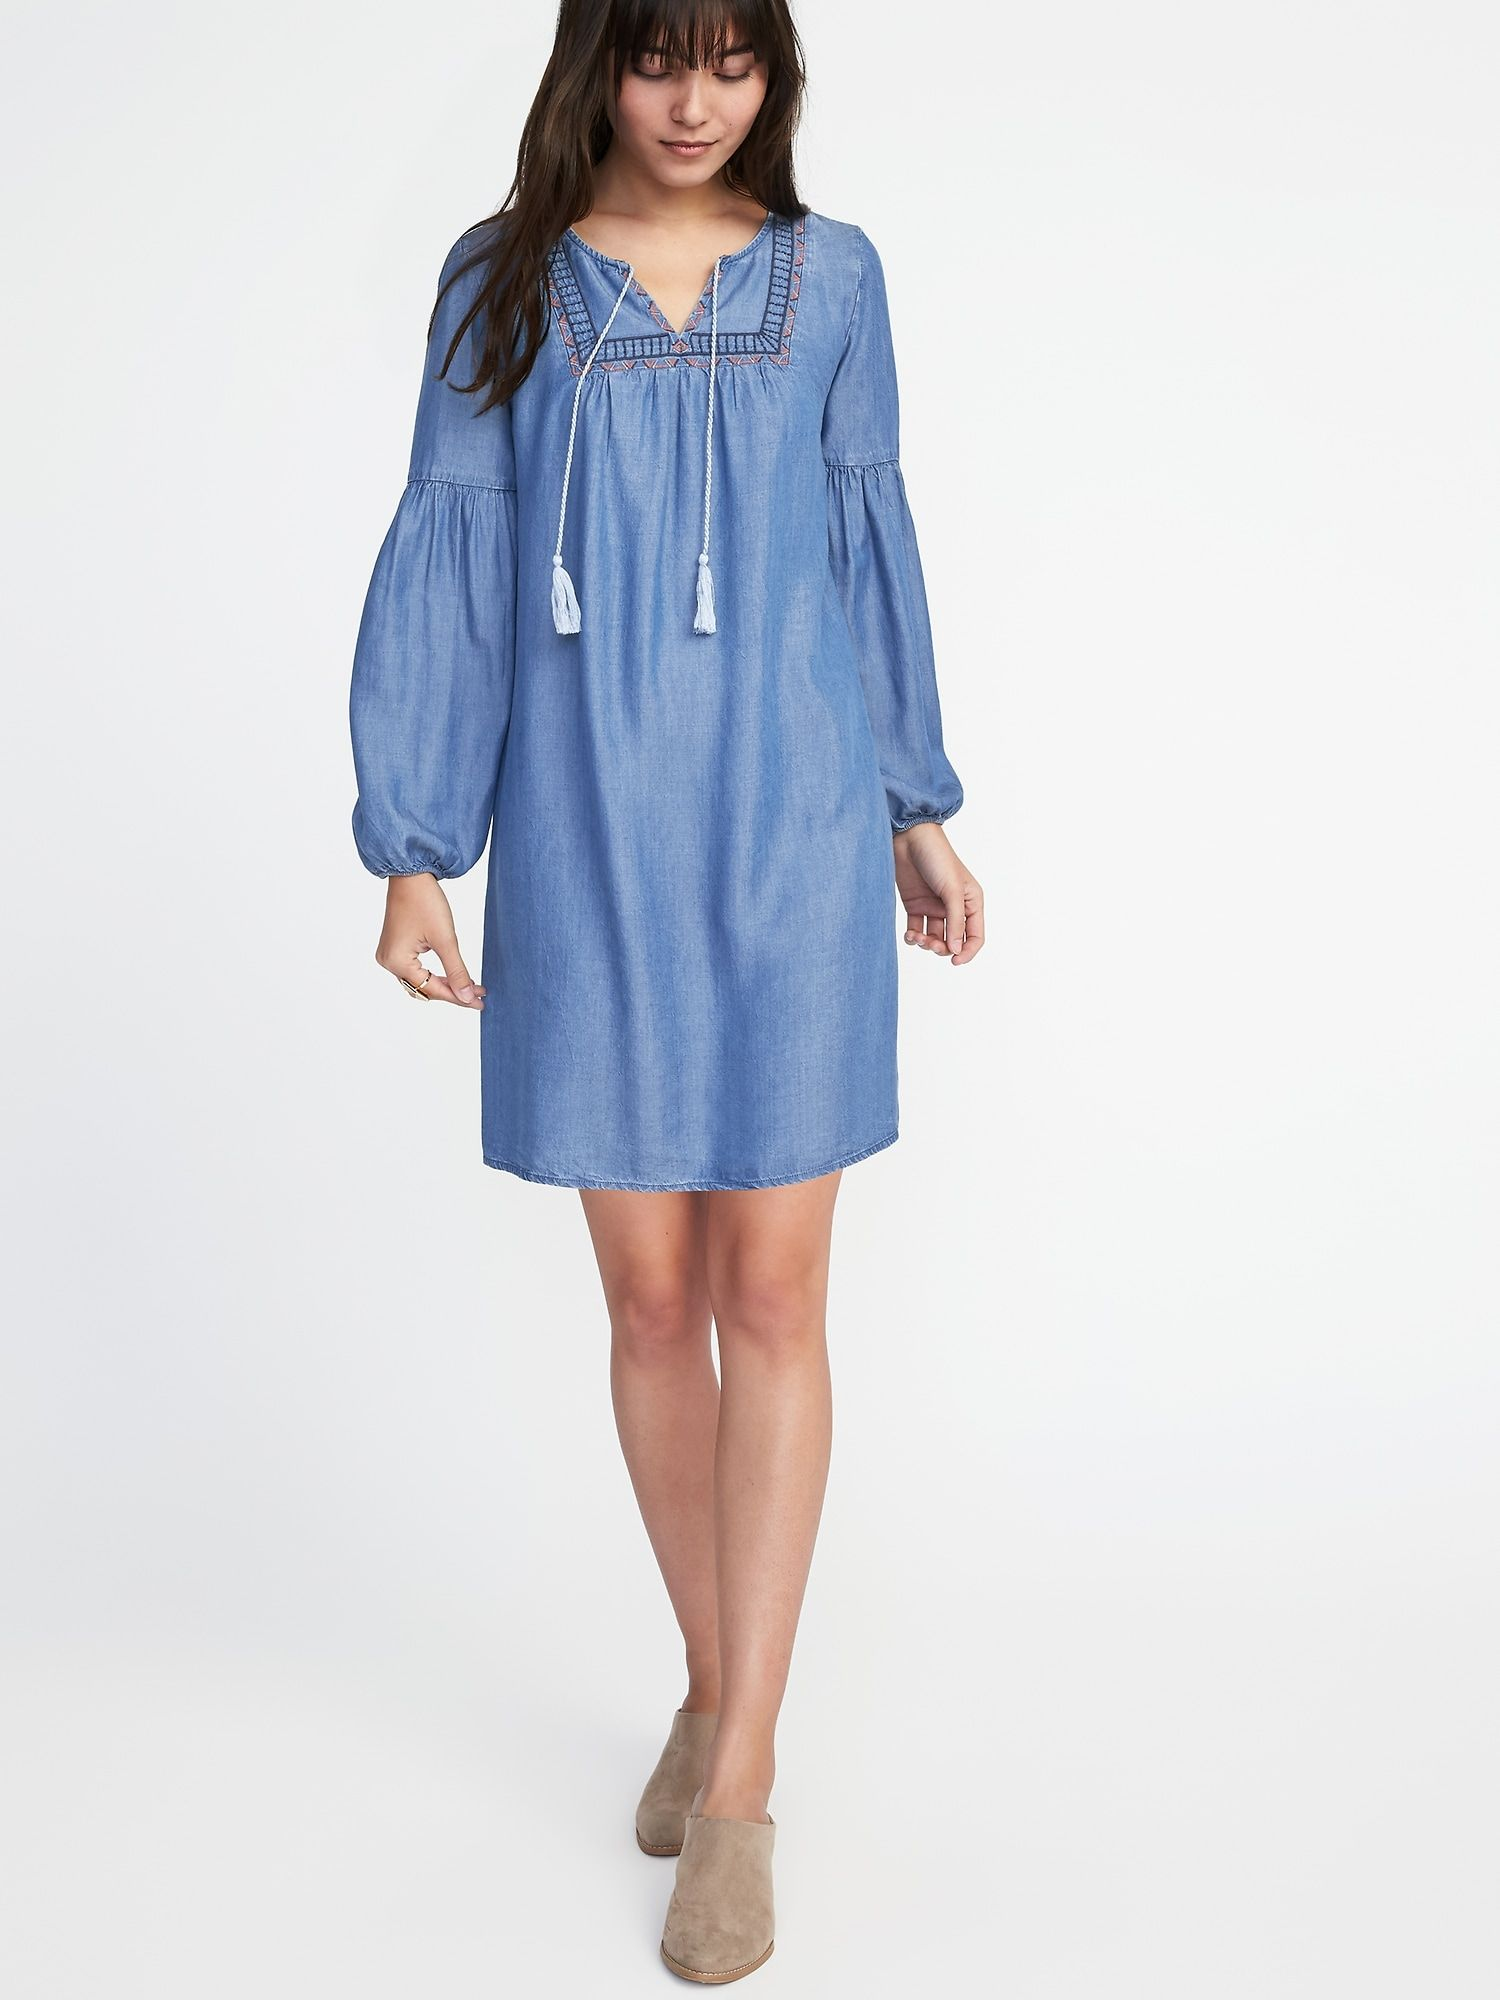 Old Navy - Embroidered Tencel® Shift Dress for Women  213316fa52